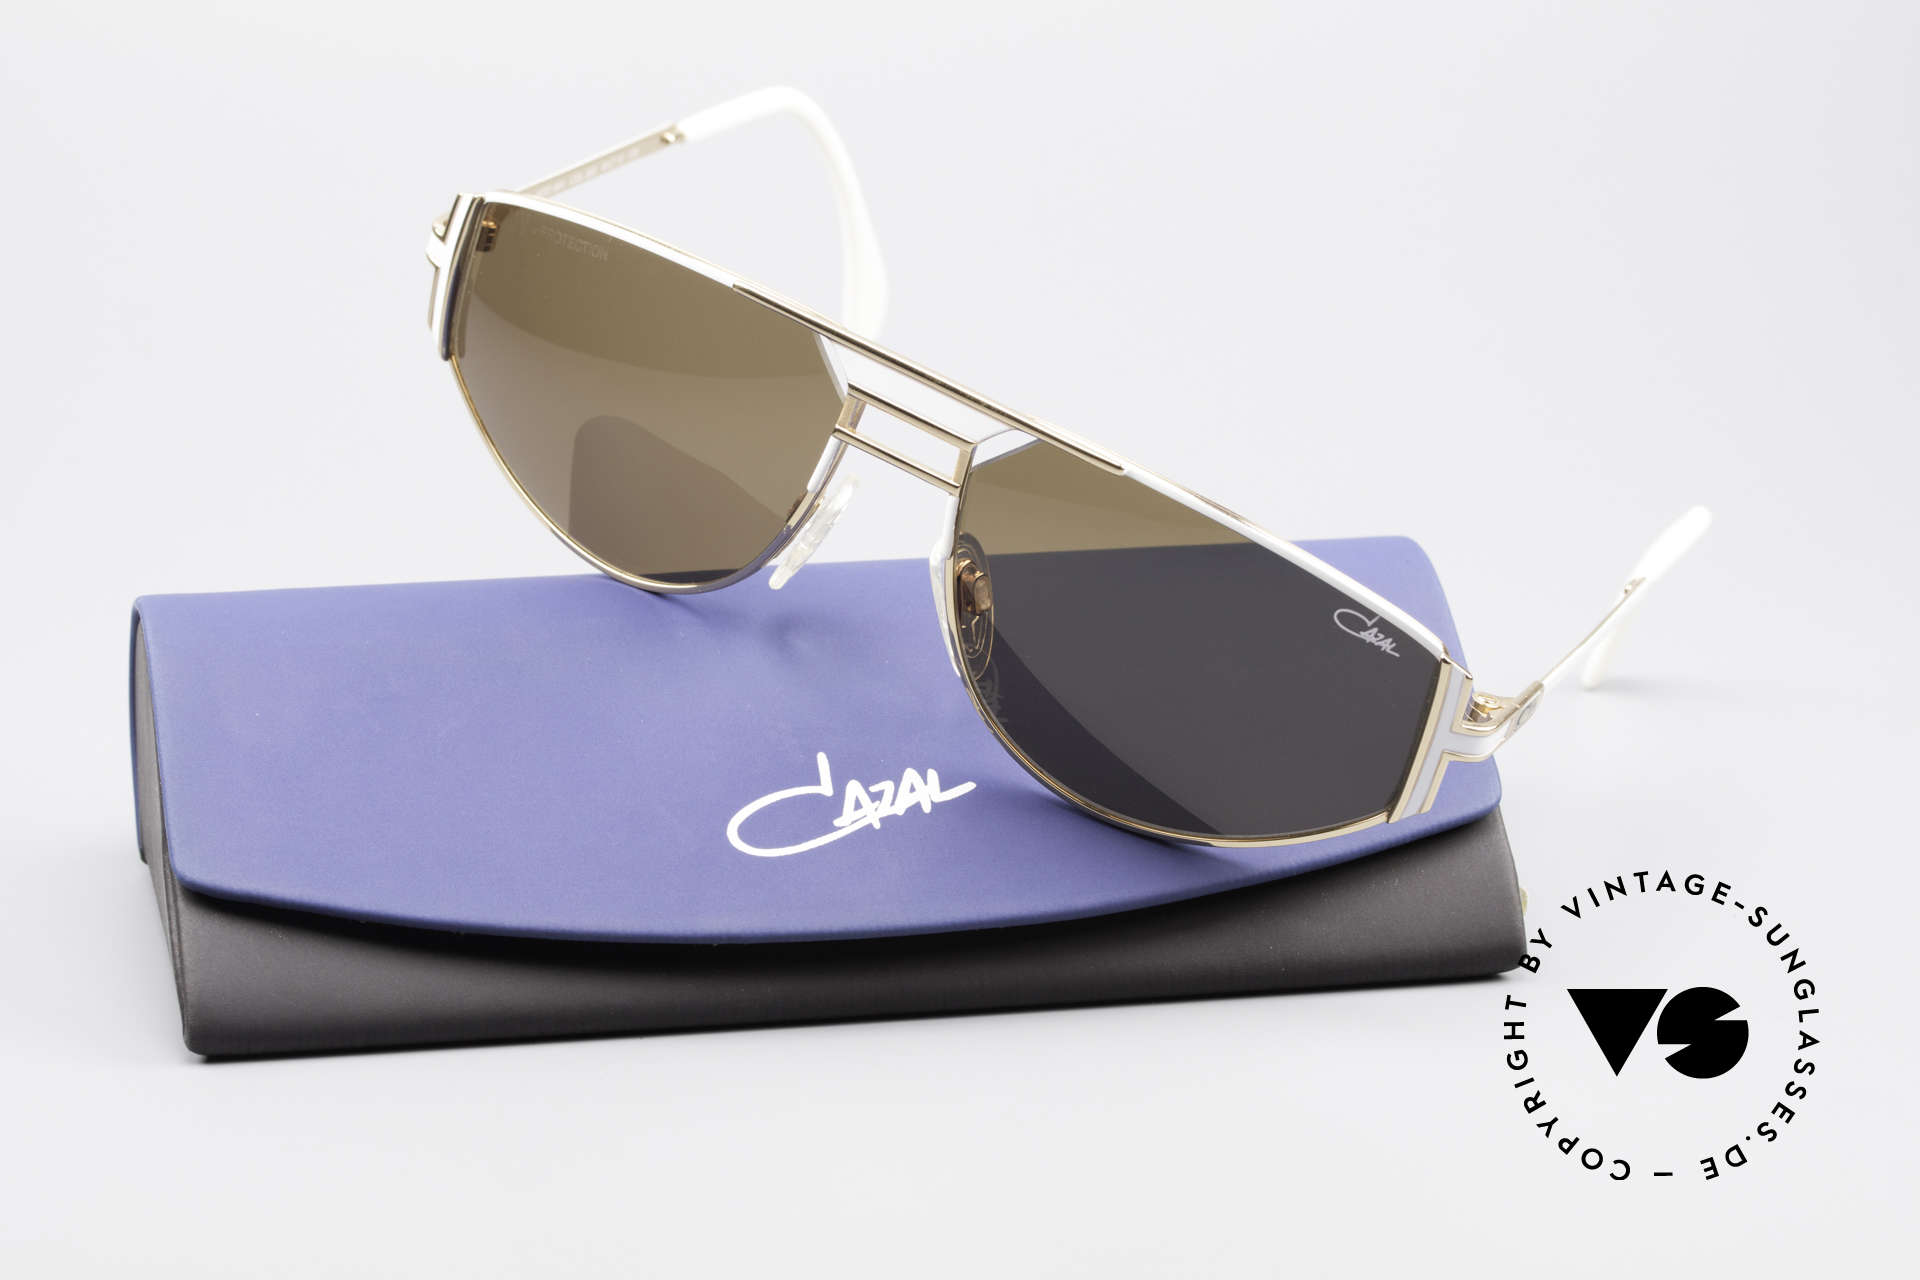 Cazal 964 True 90's Original Shades, unworn rarity (like all our old vintage Cazal eyewear), Made for Men and Women